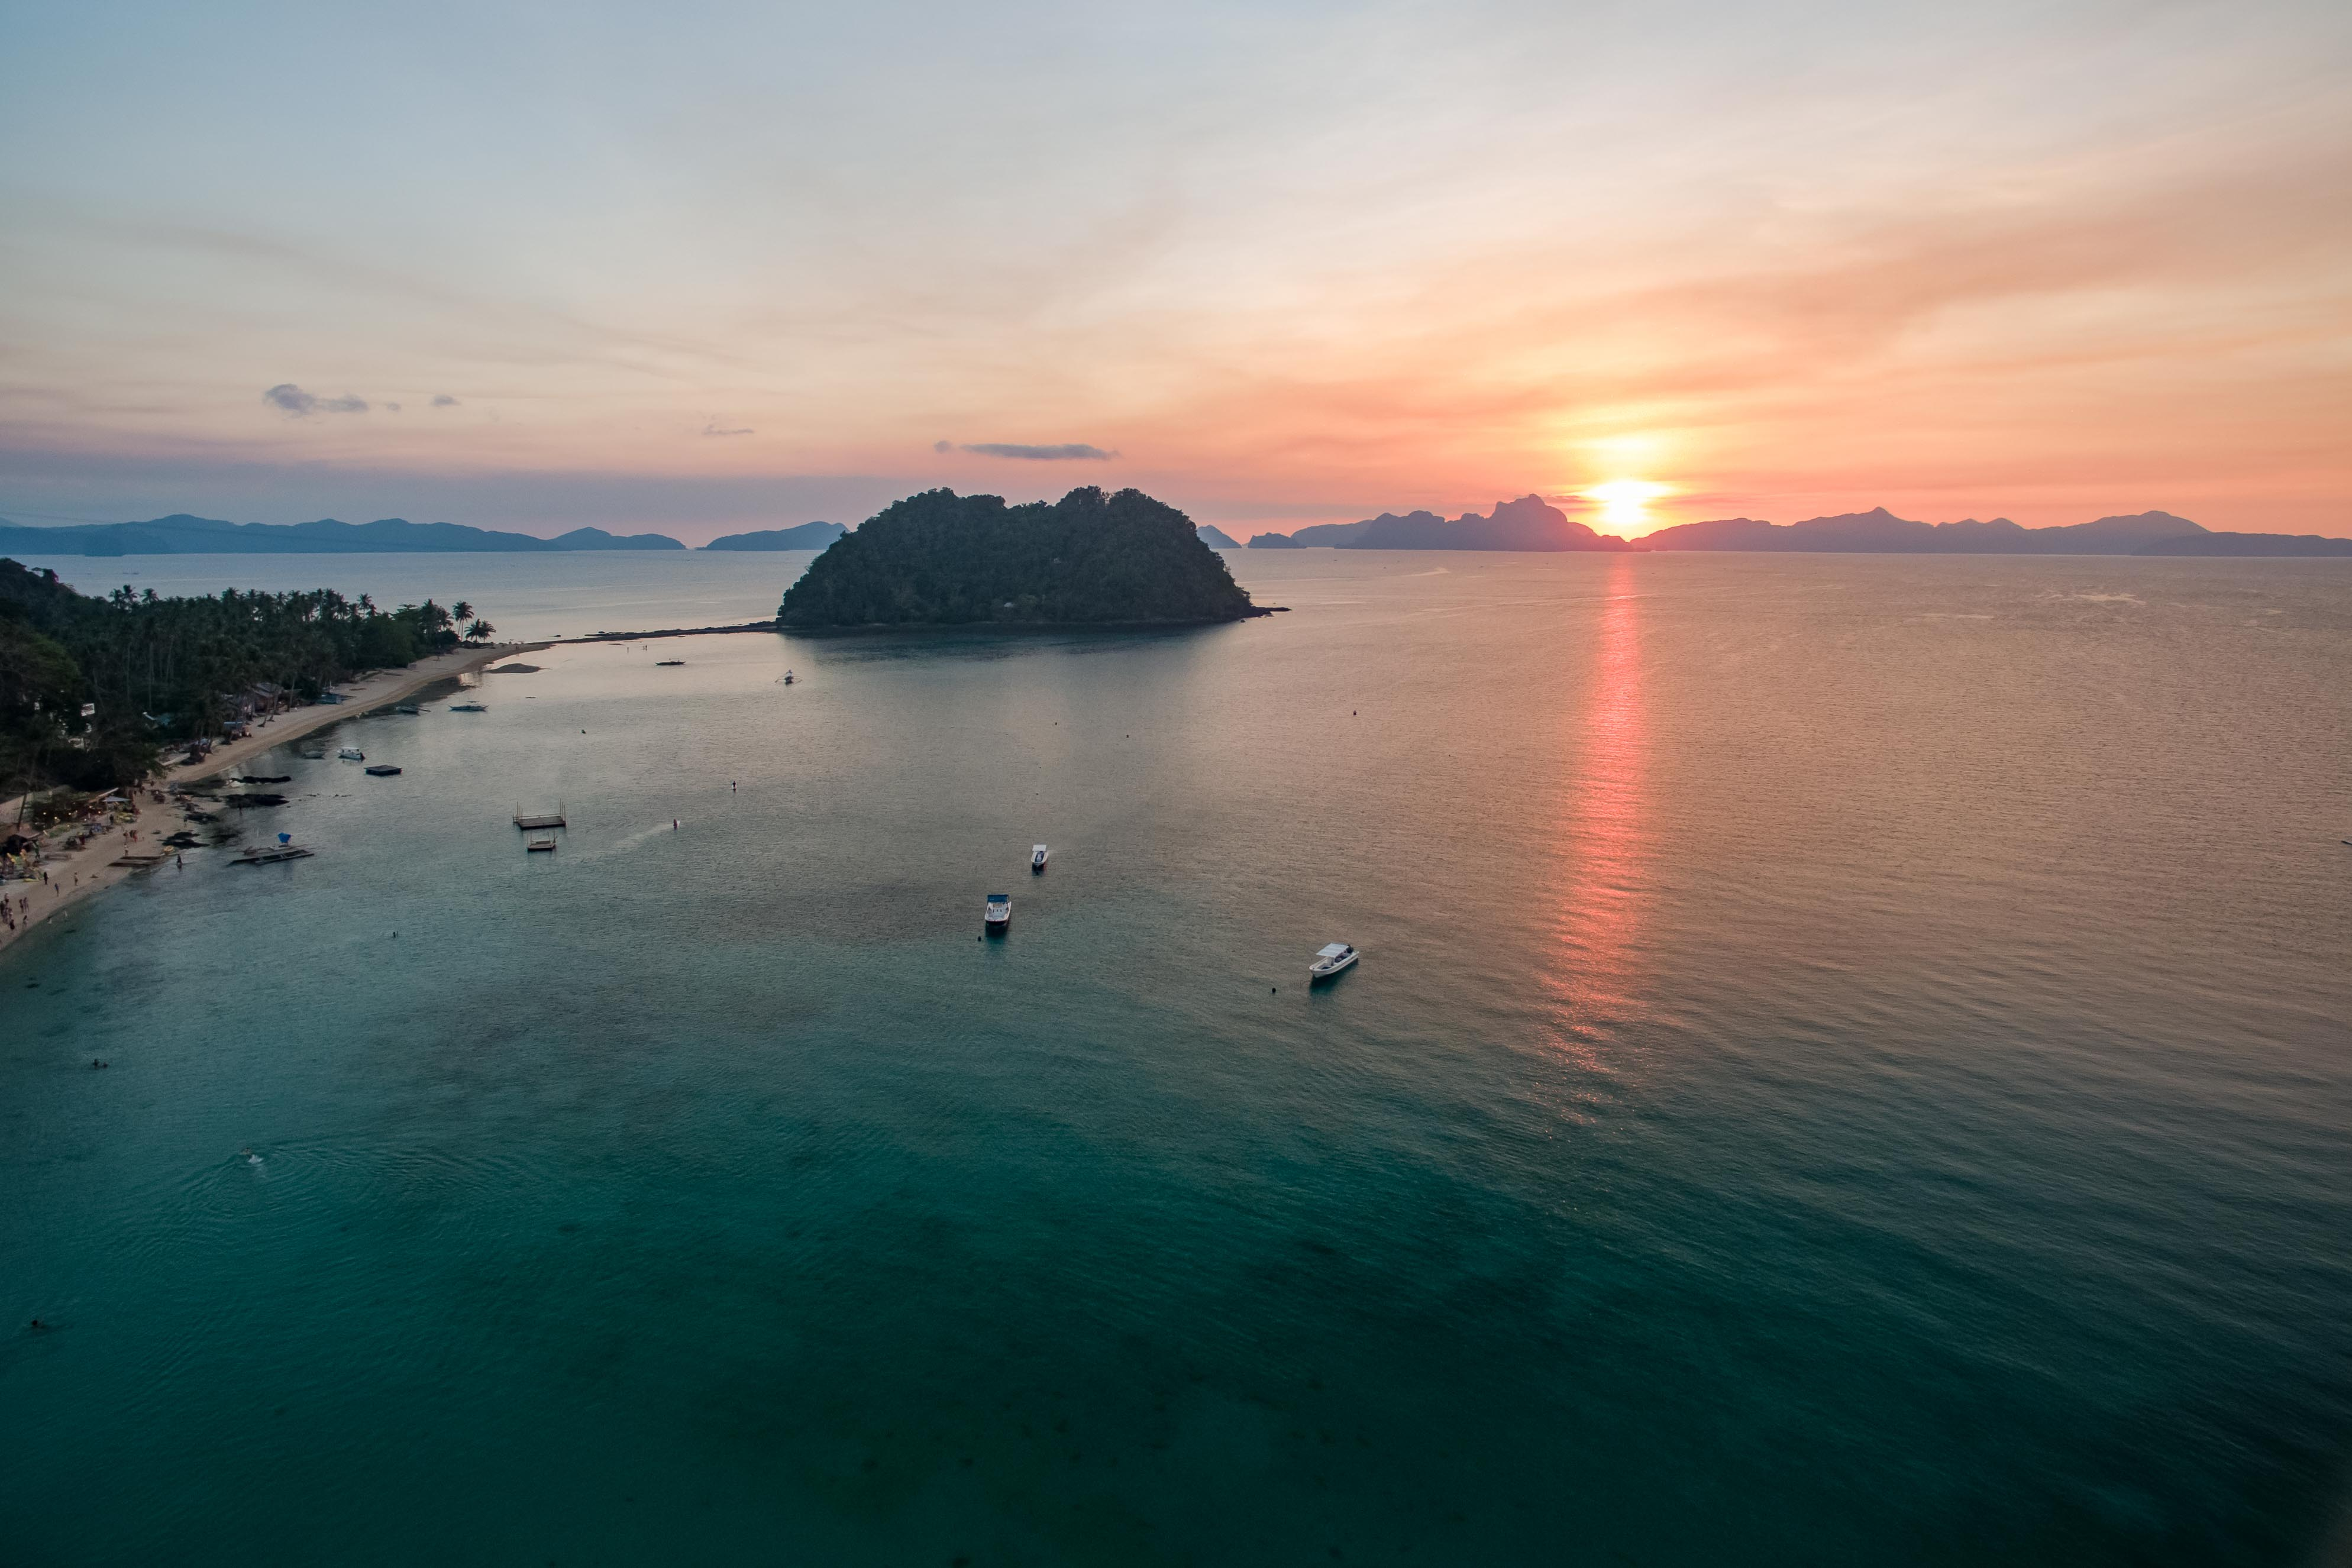 Vlog Expedition Violette Vauchelle Philippines El Nido Las Cabanas Sunset Drone